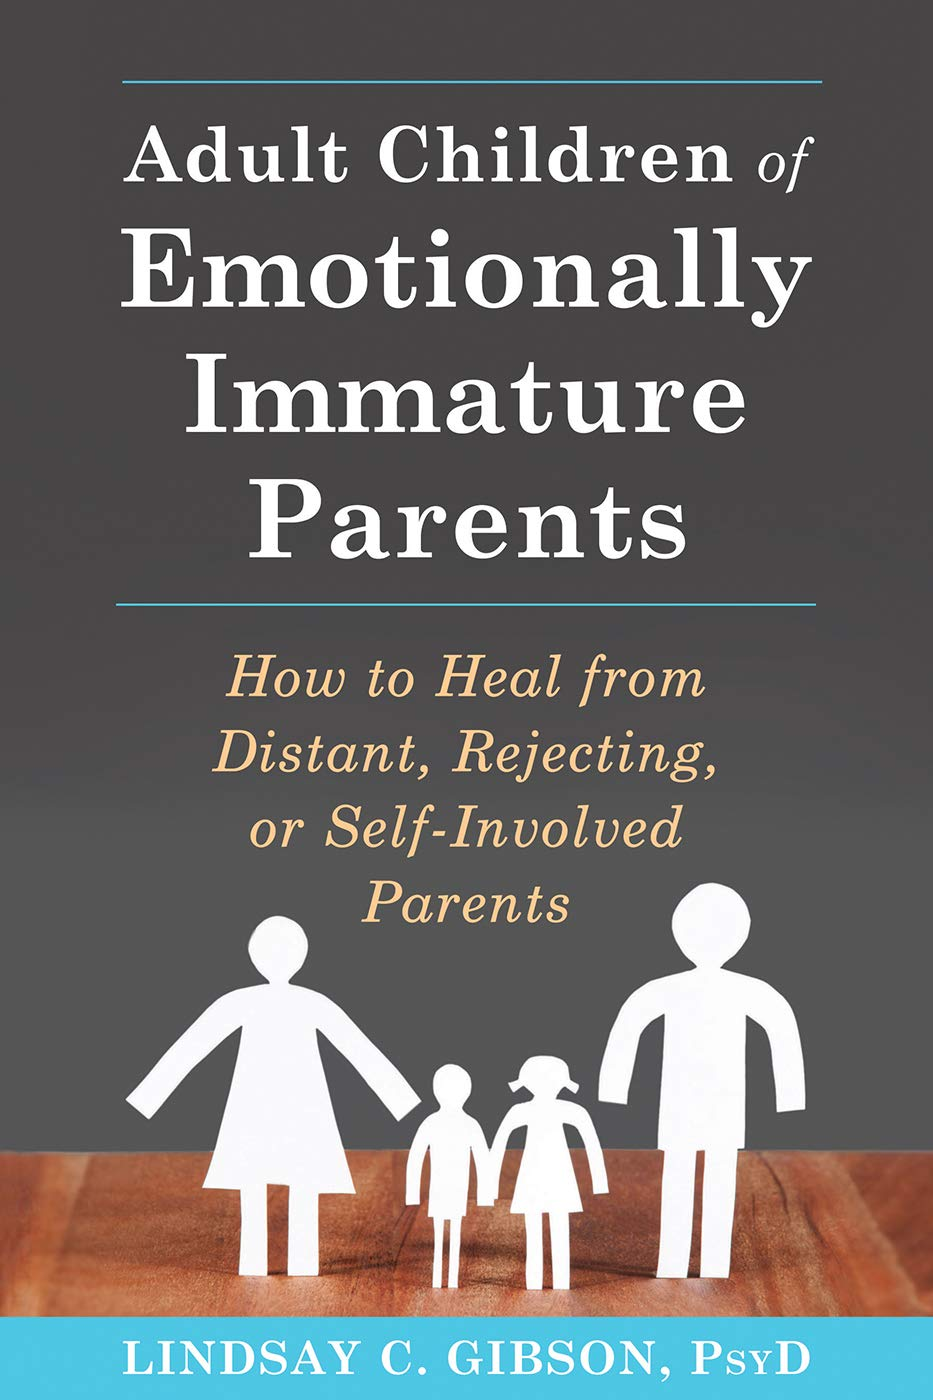 Adult Children Of Emotionally Immature Parents  How To Heal From Distant Rejecting Or Self Involved Parents  English Edition